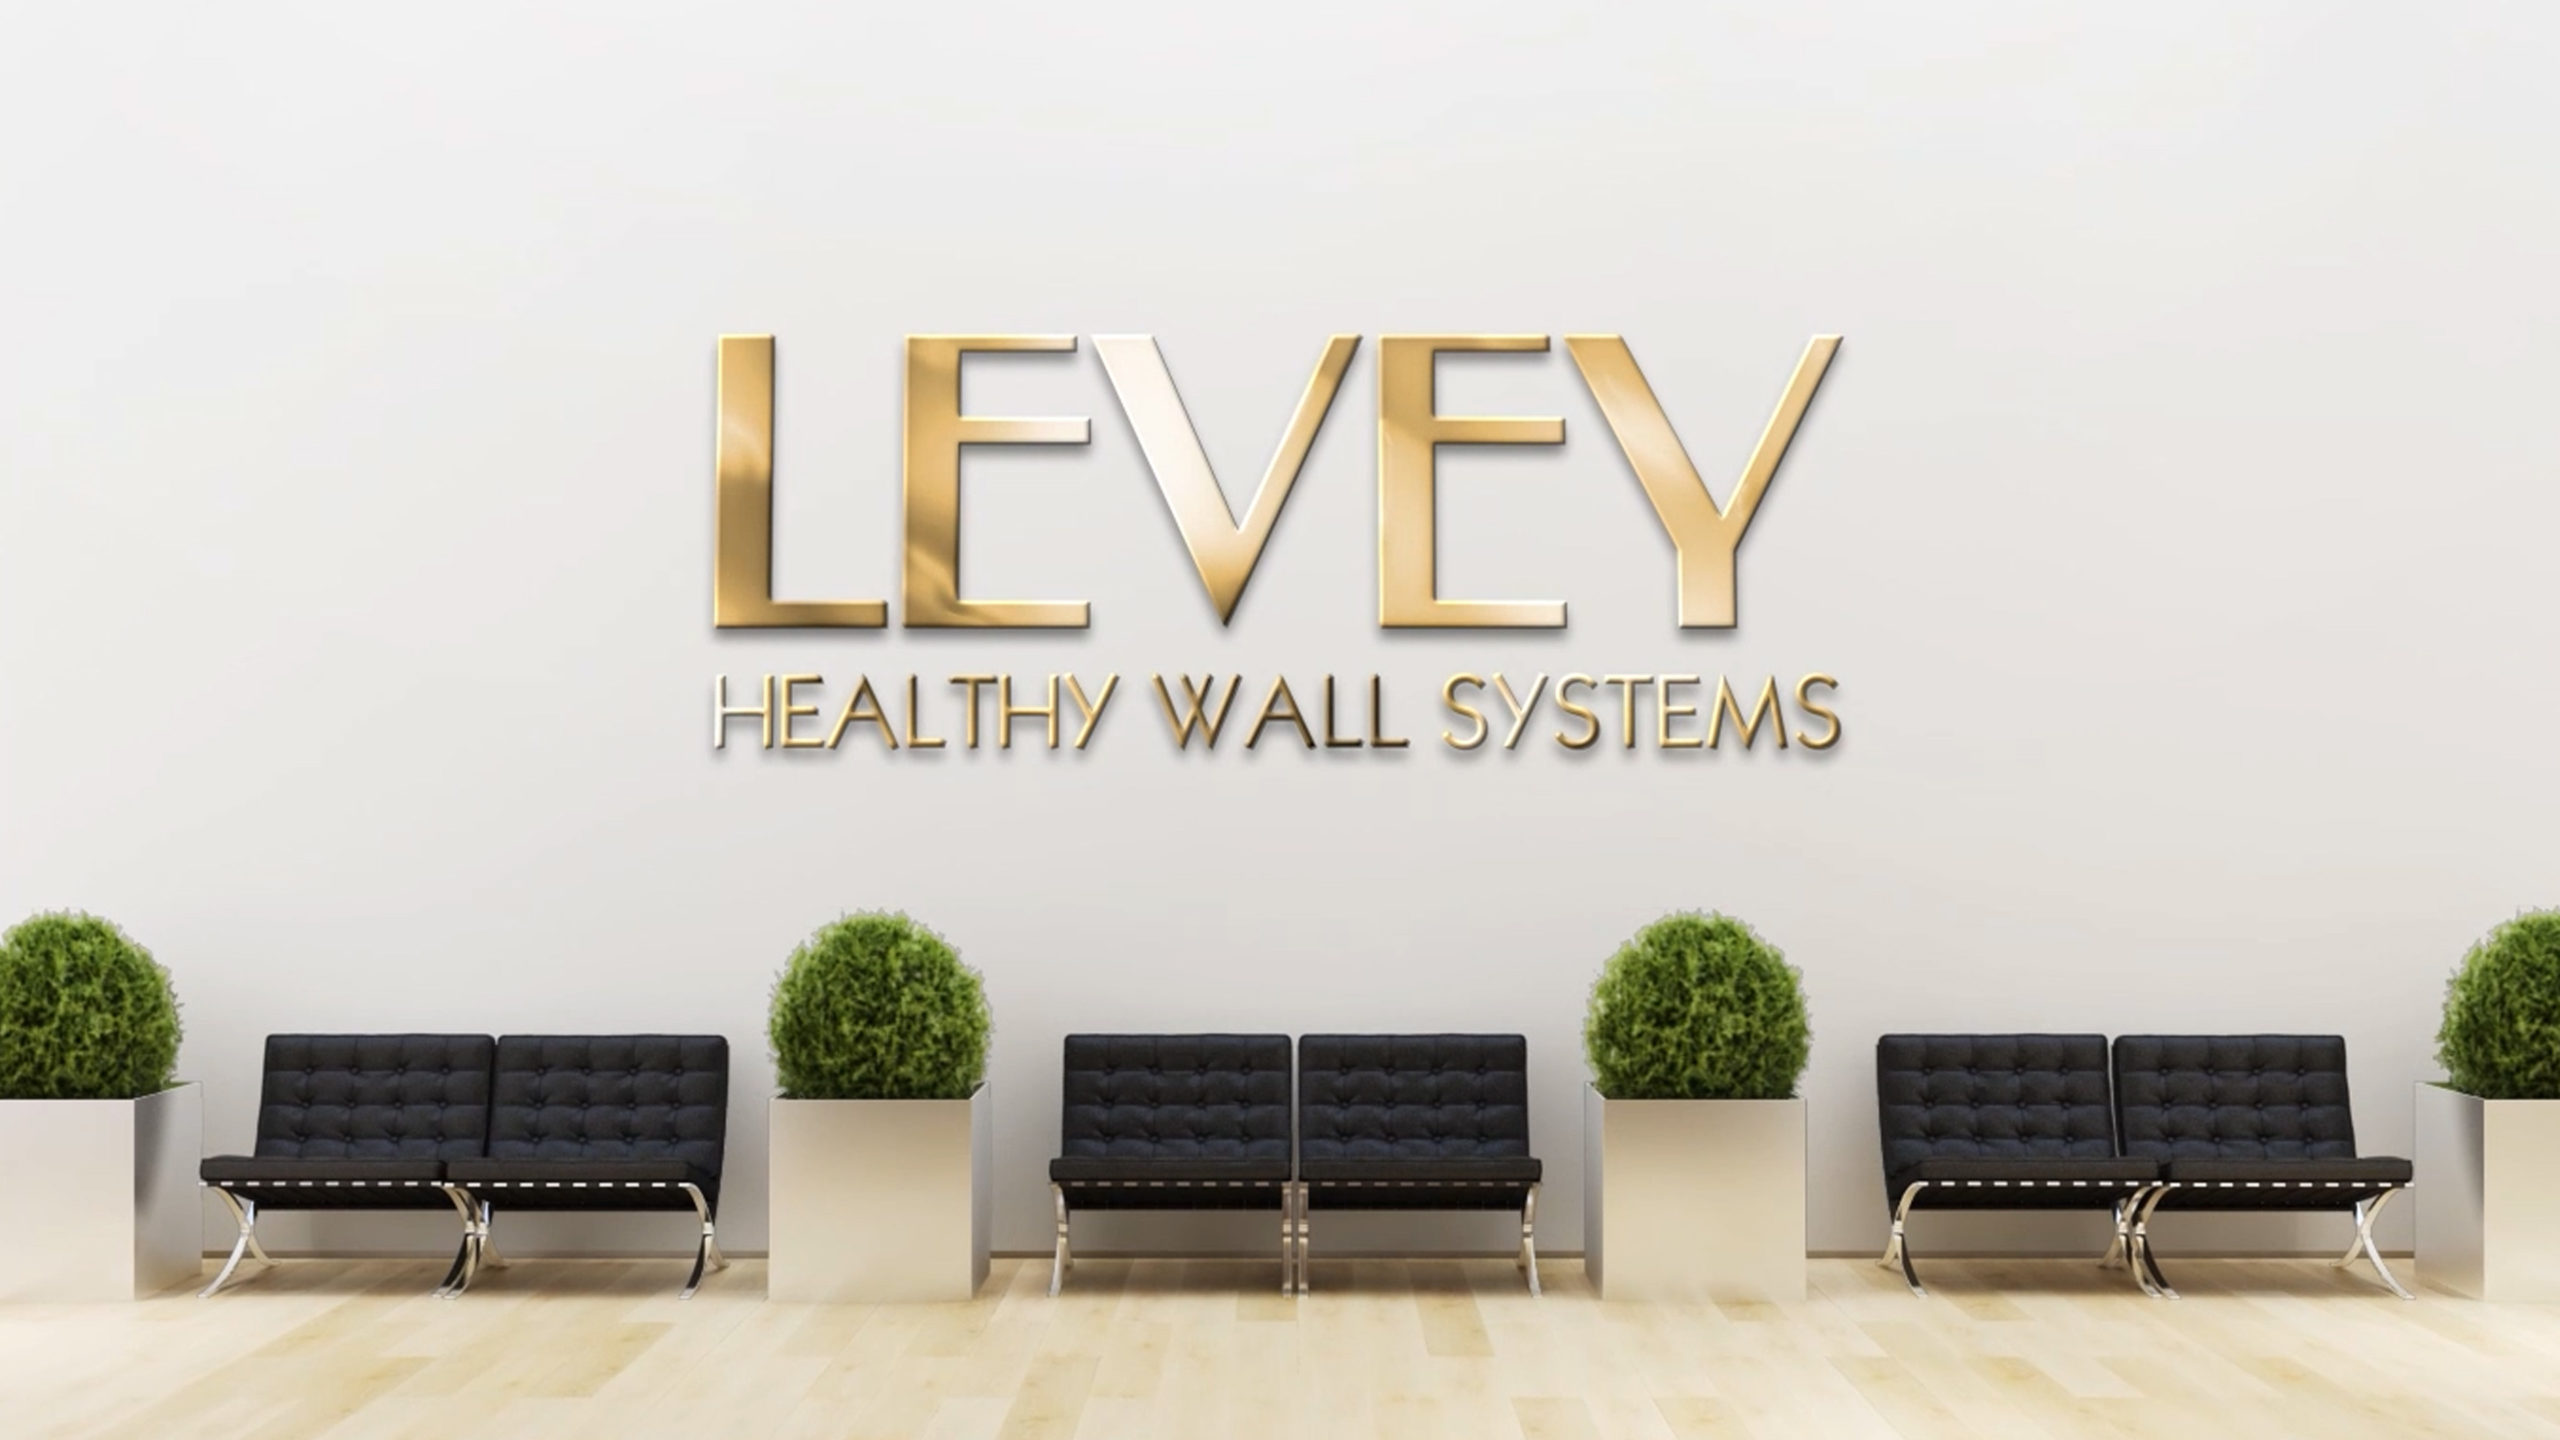 Why Healthy Wall Systems, LEVEY